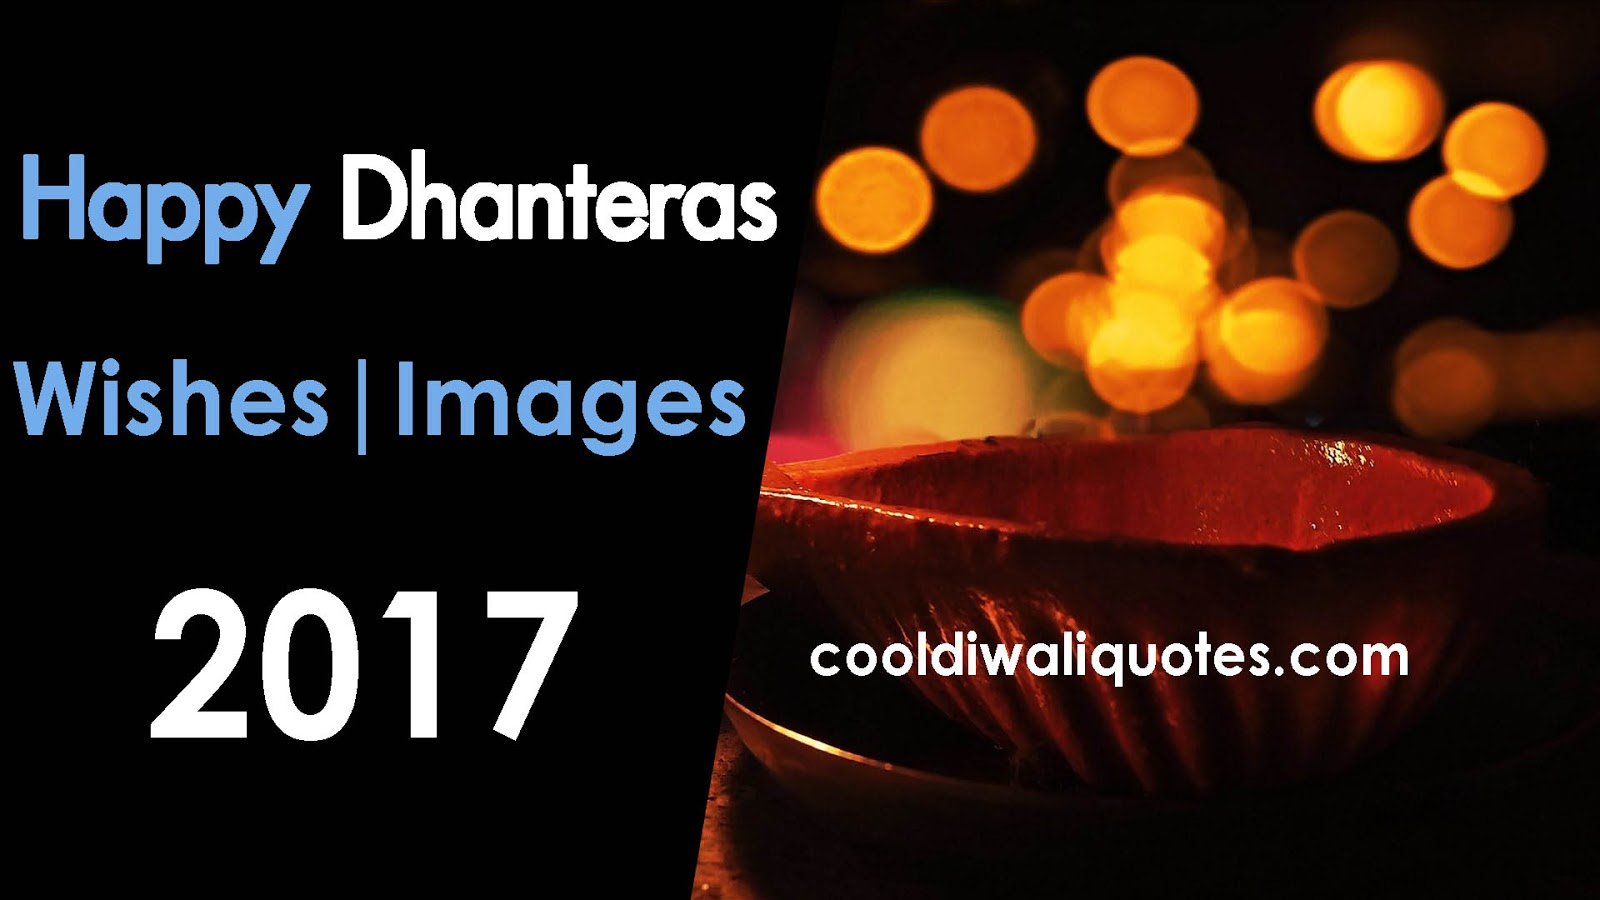 Latest*} Happy Dhanteras Wishes 2017, Quotes, HD Images, SMS Free for diwali single diya wallpaper  177nar